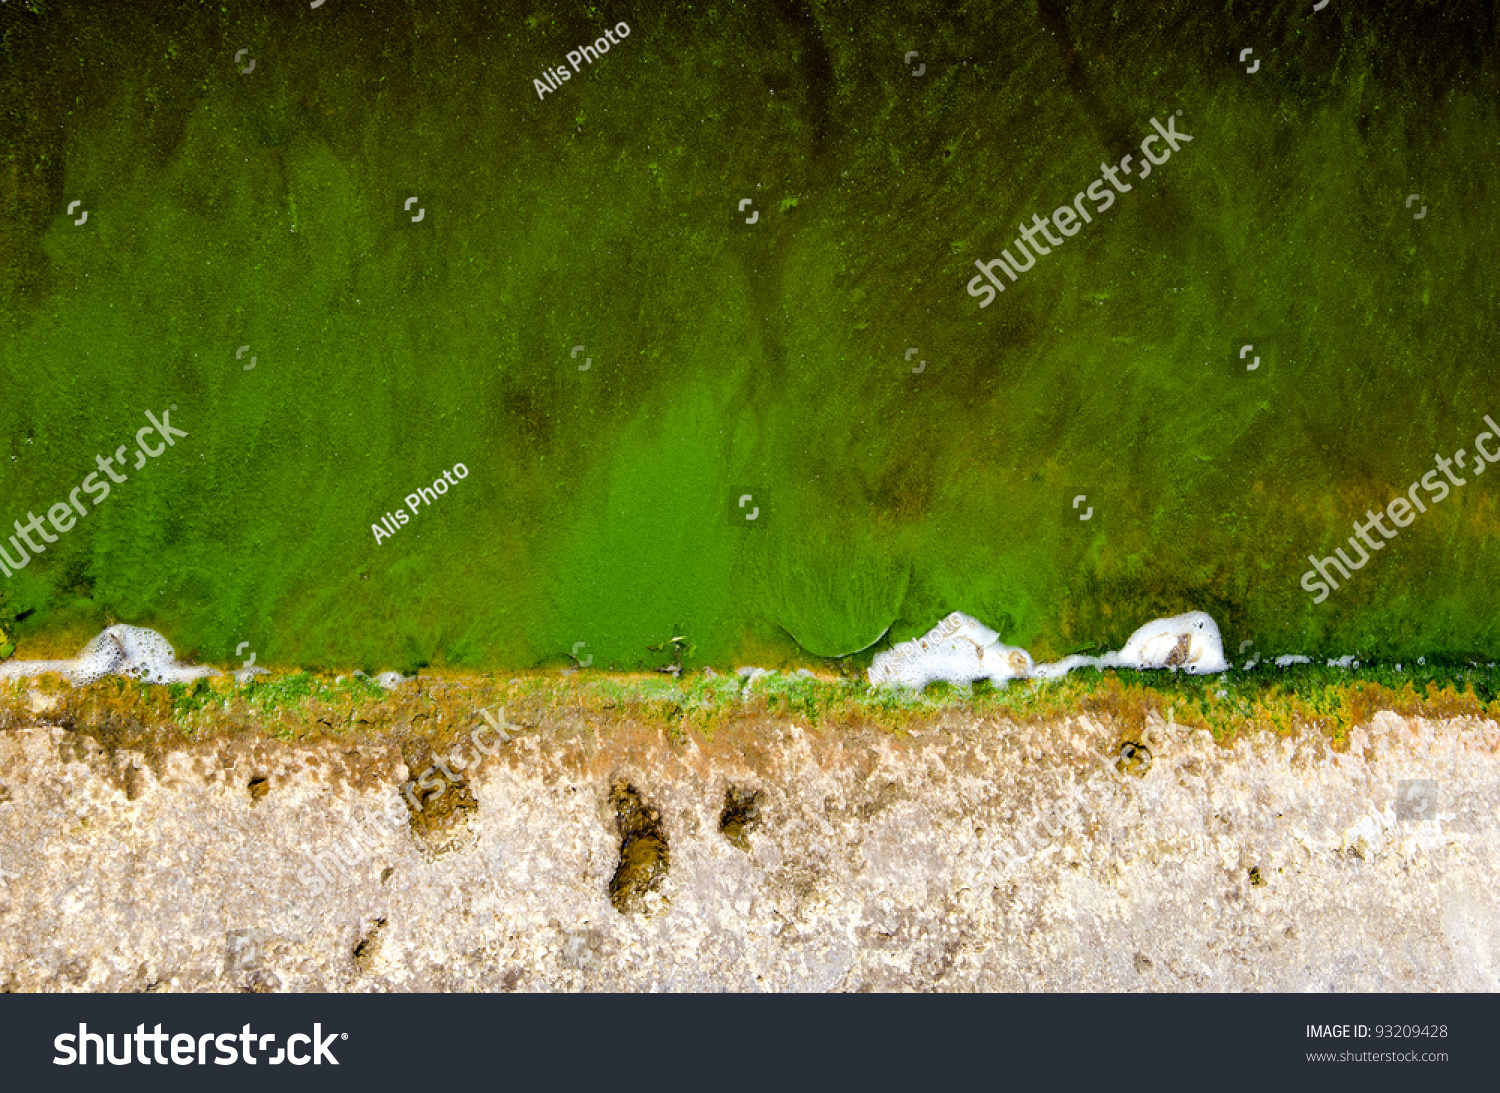 Green pond water with algae background and texture stock for Green pond water